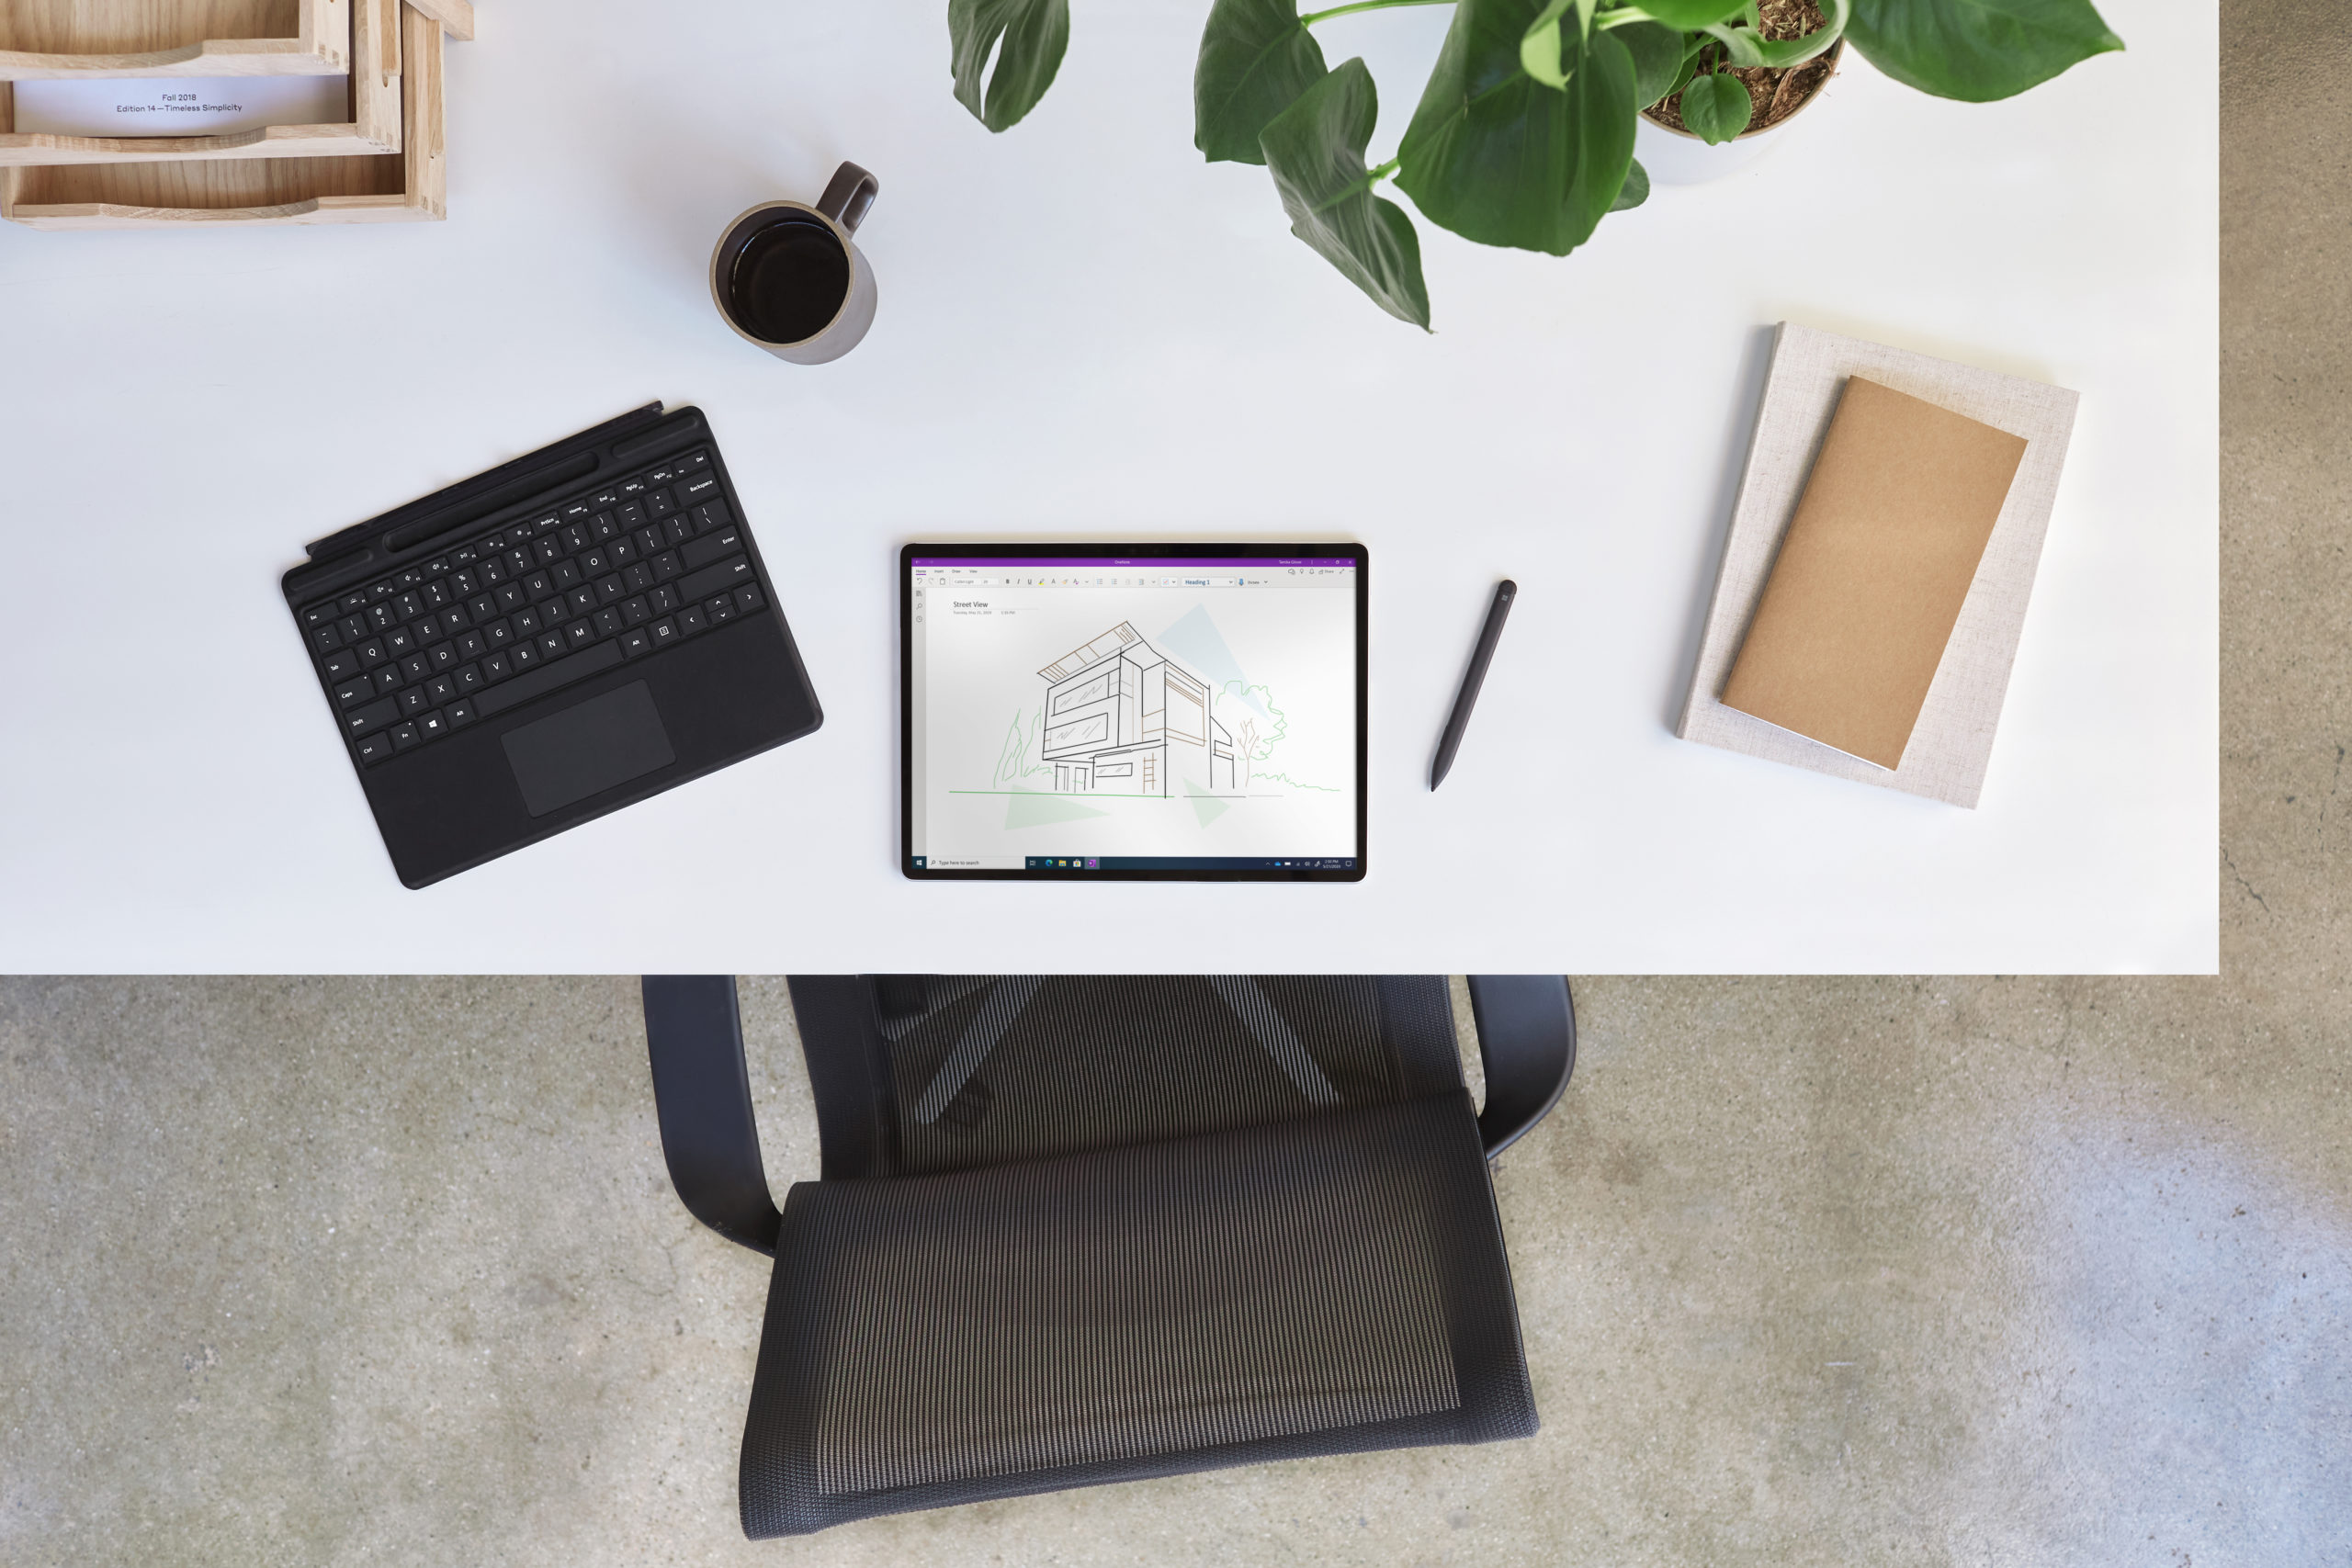 Bird's eye view of Surface Pro X projecting OneNote with a detached black keyboard, pen, books, plant, mug, and wooden shelf.